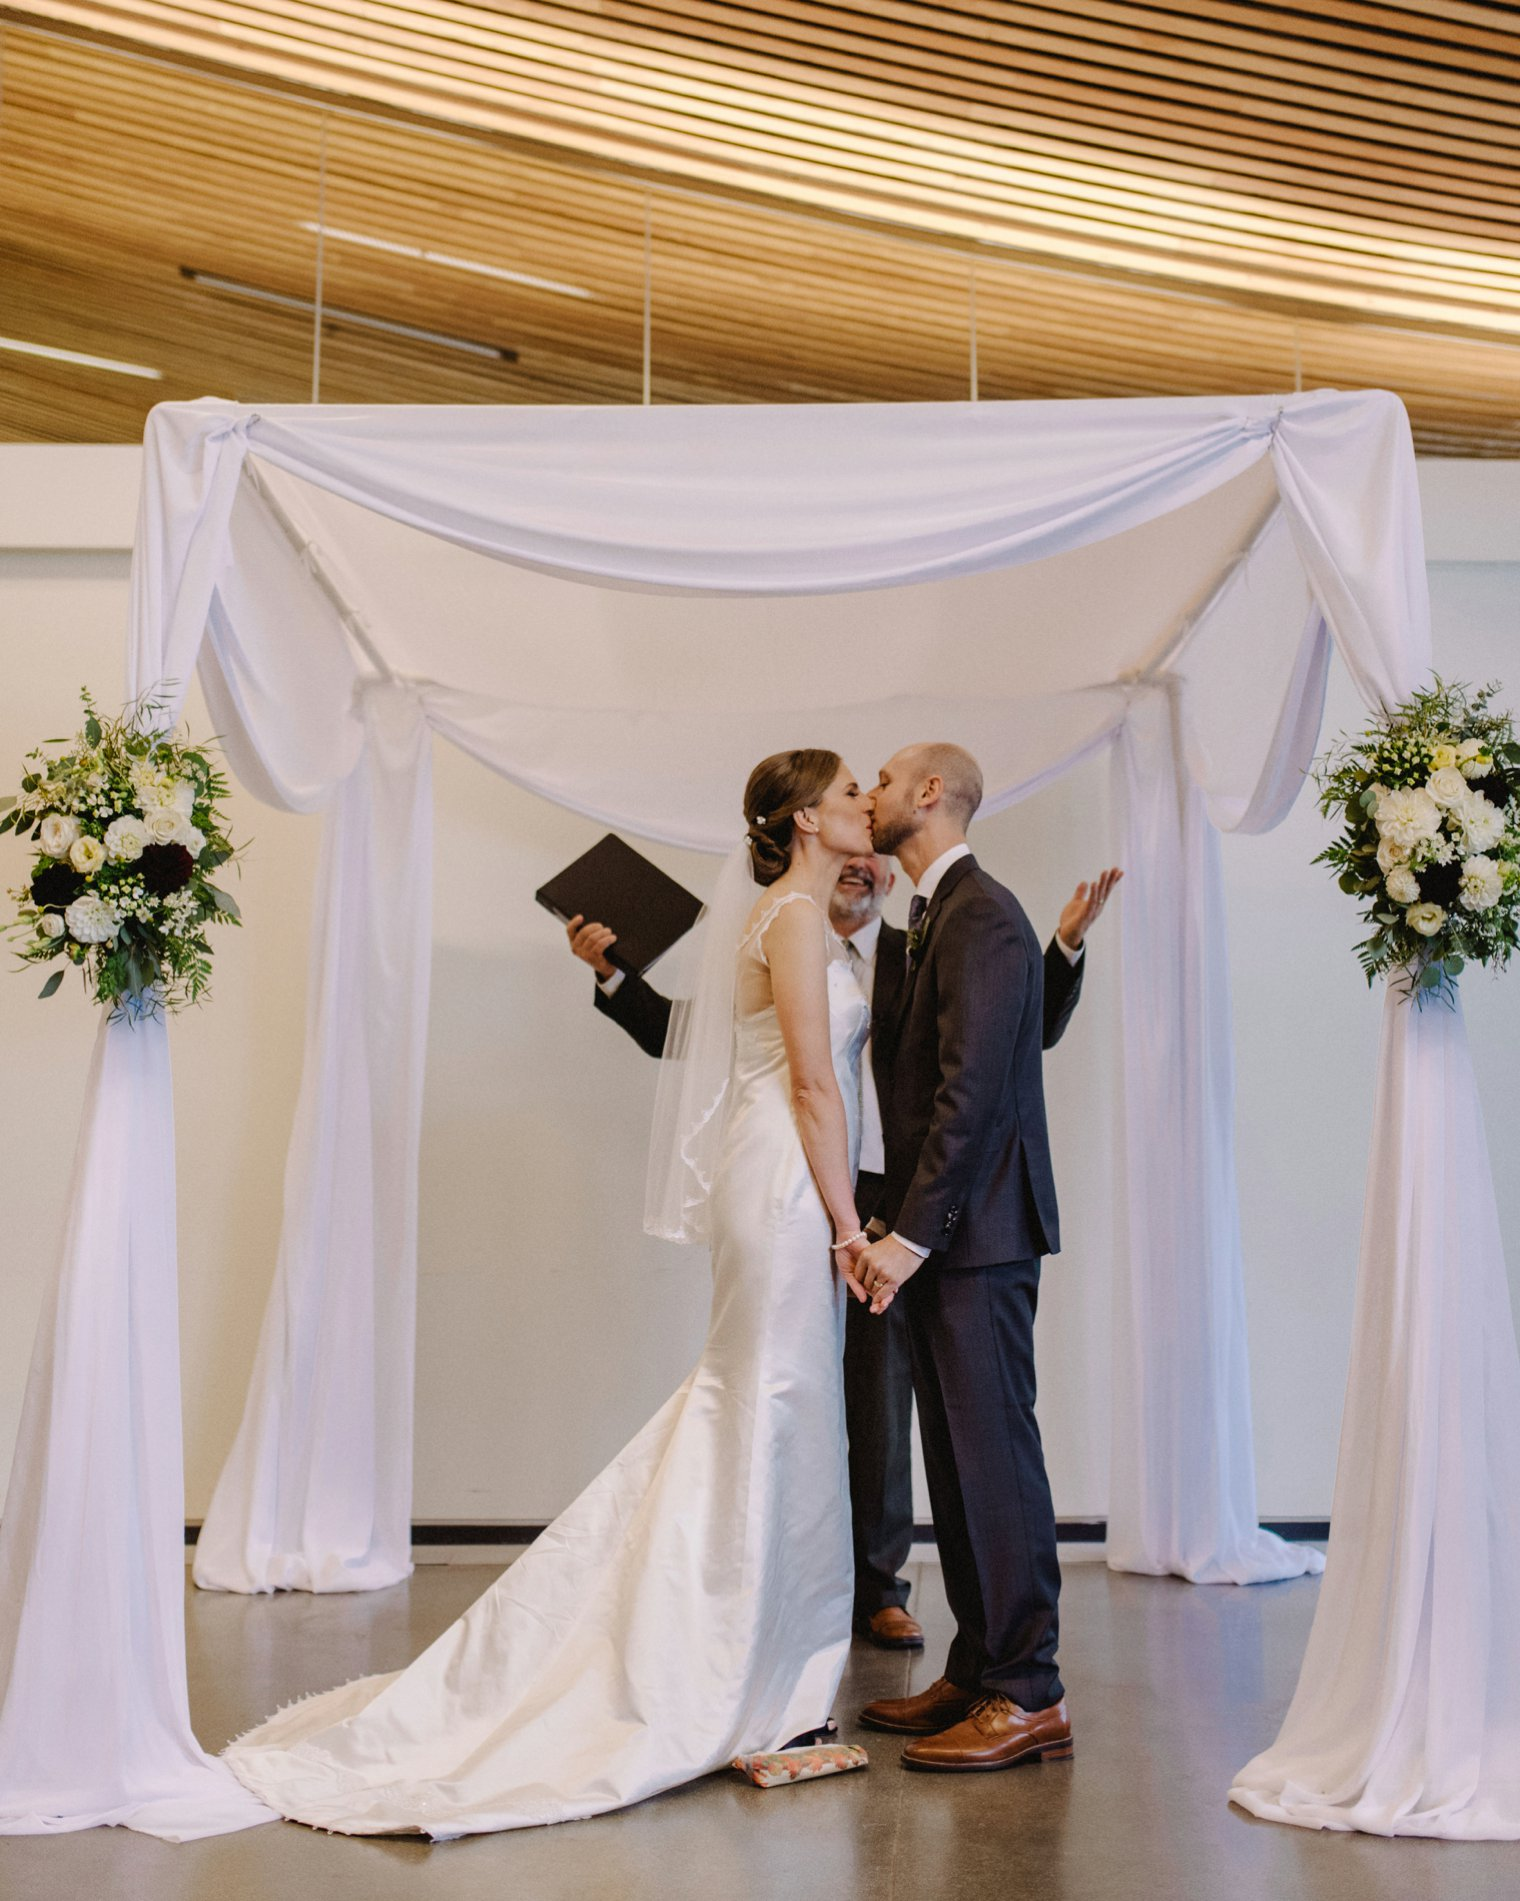 indoor wedding ceremony at vandusen garden in vancouver